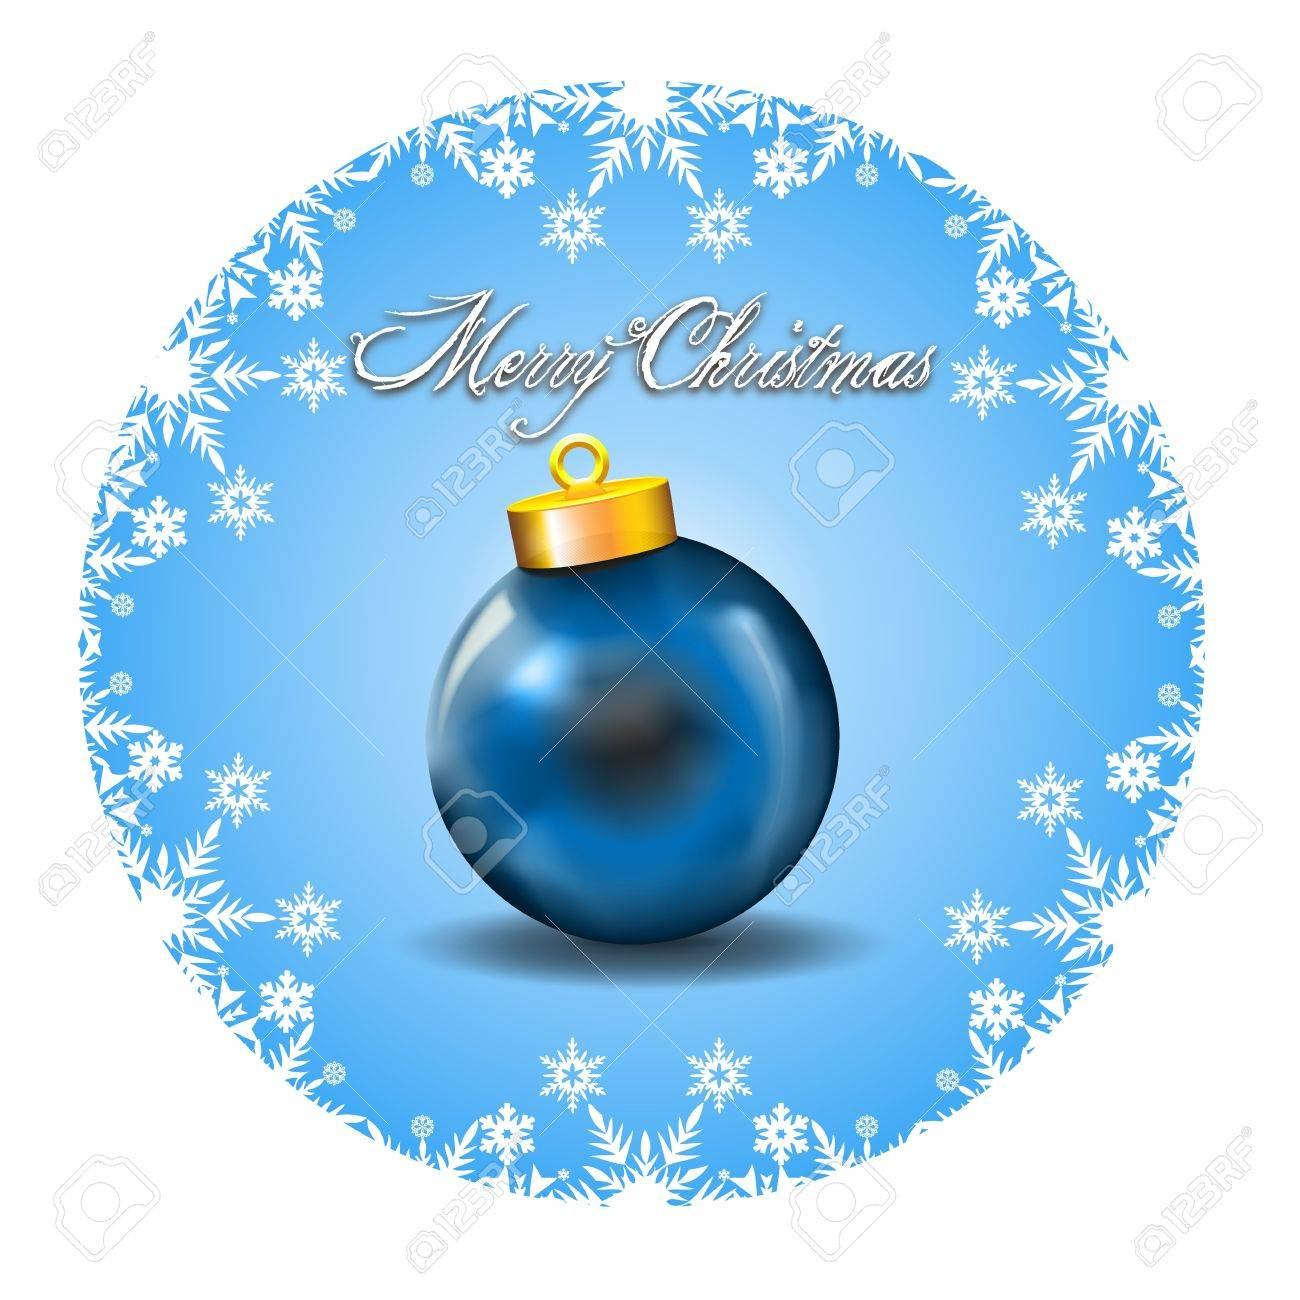 Merry Christmas Decoration with white snow icons and Blue Ball   Merry Christmas Wishes framed by a White Snow Icons decoration in a cyan background with blue ball Stock Vector - 16380802